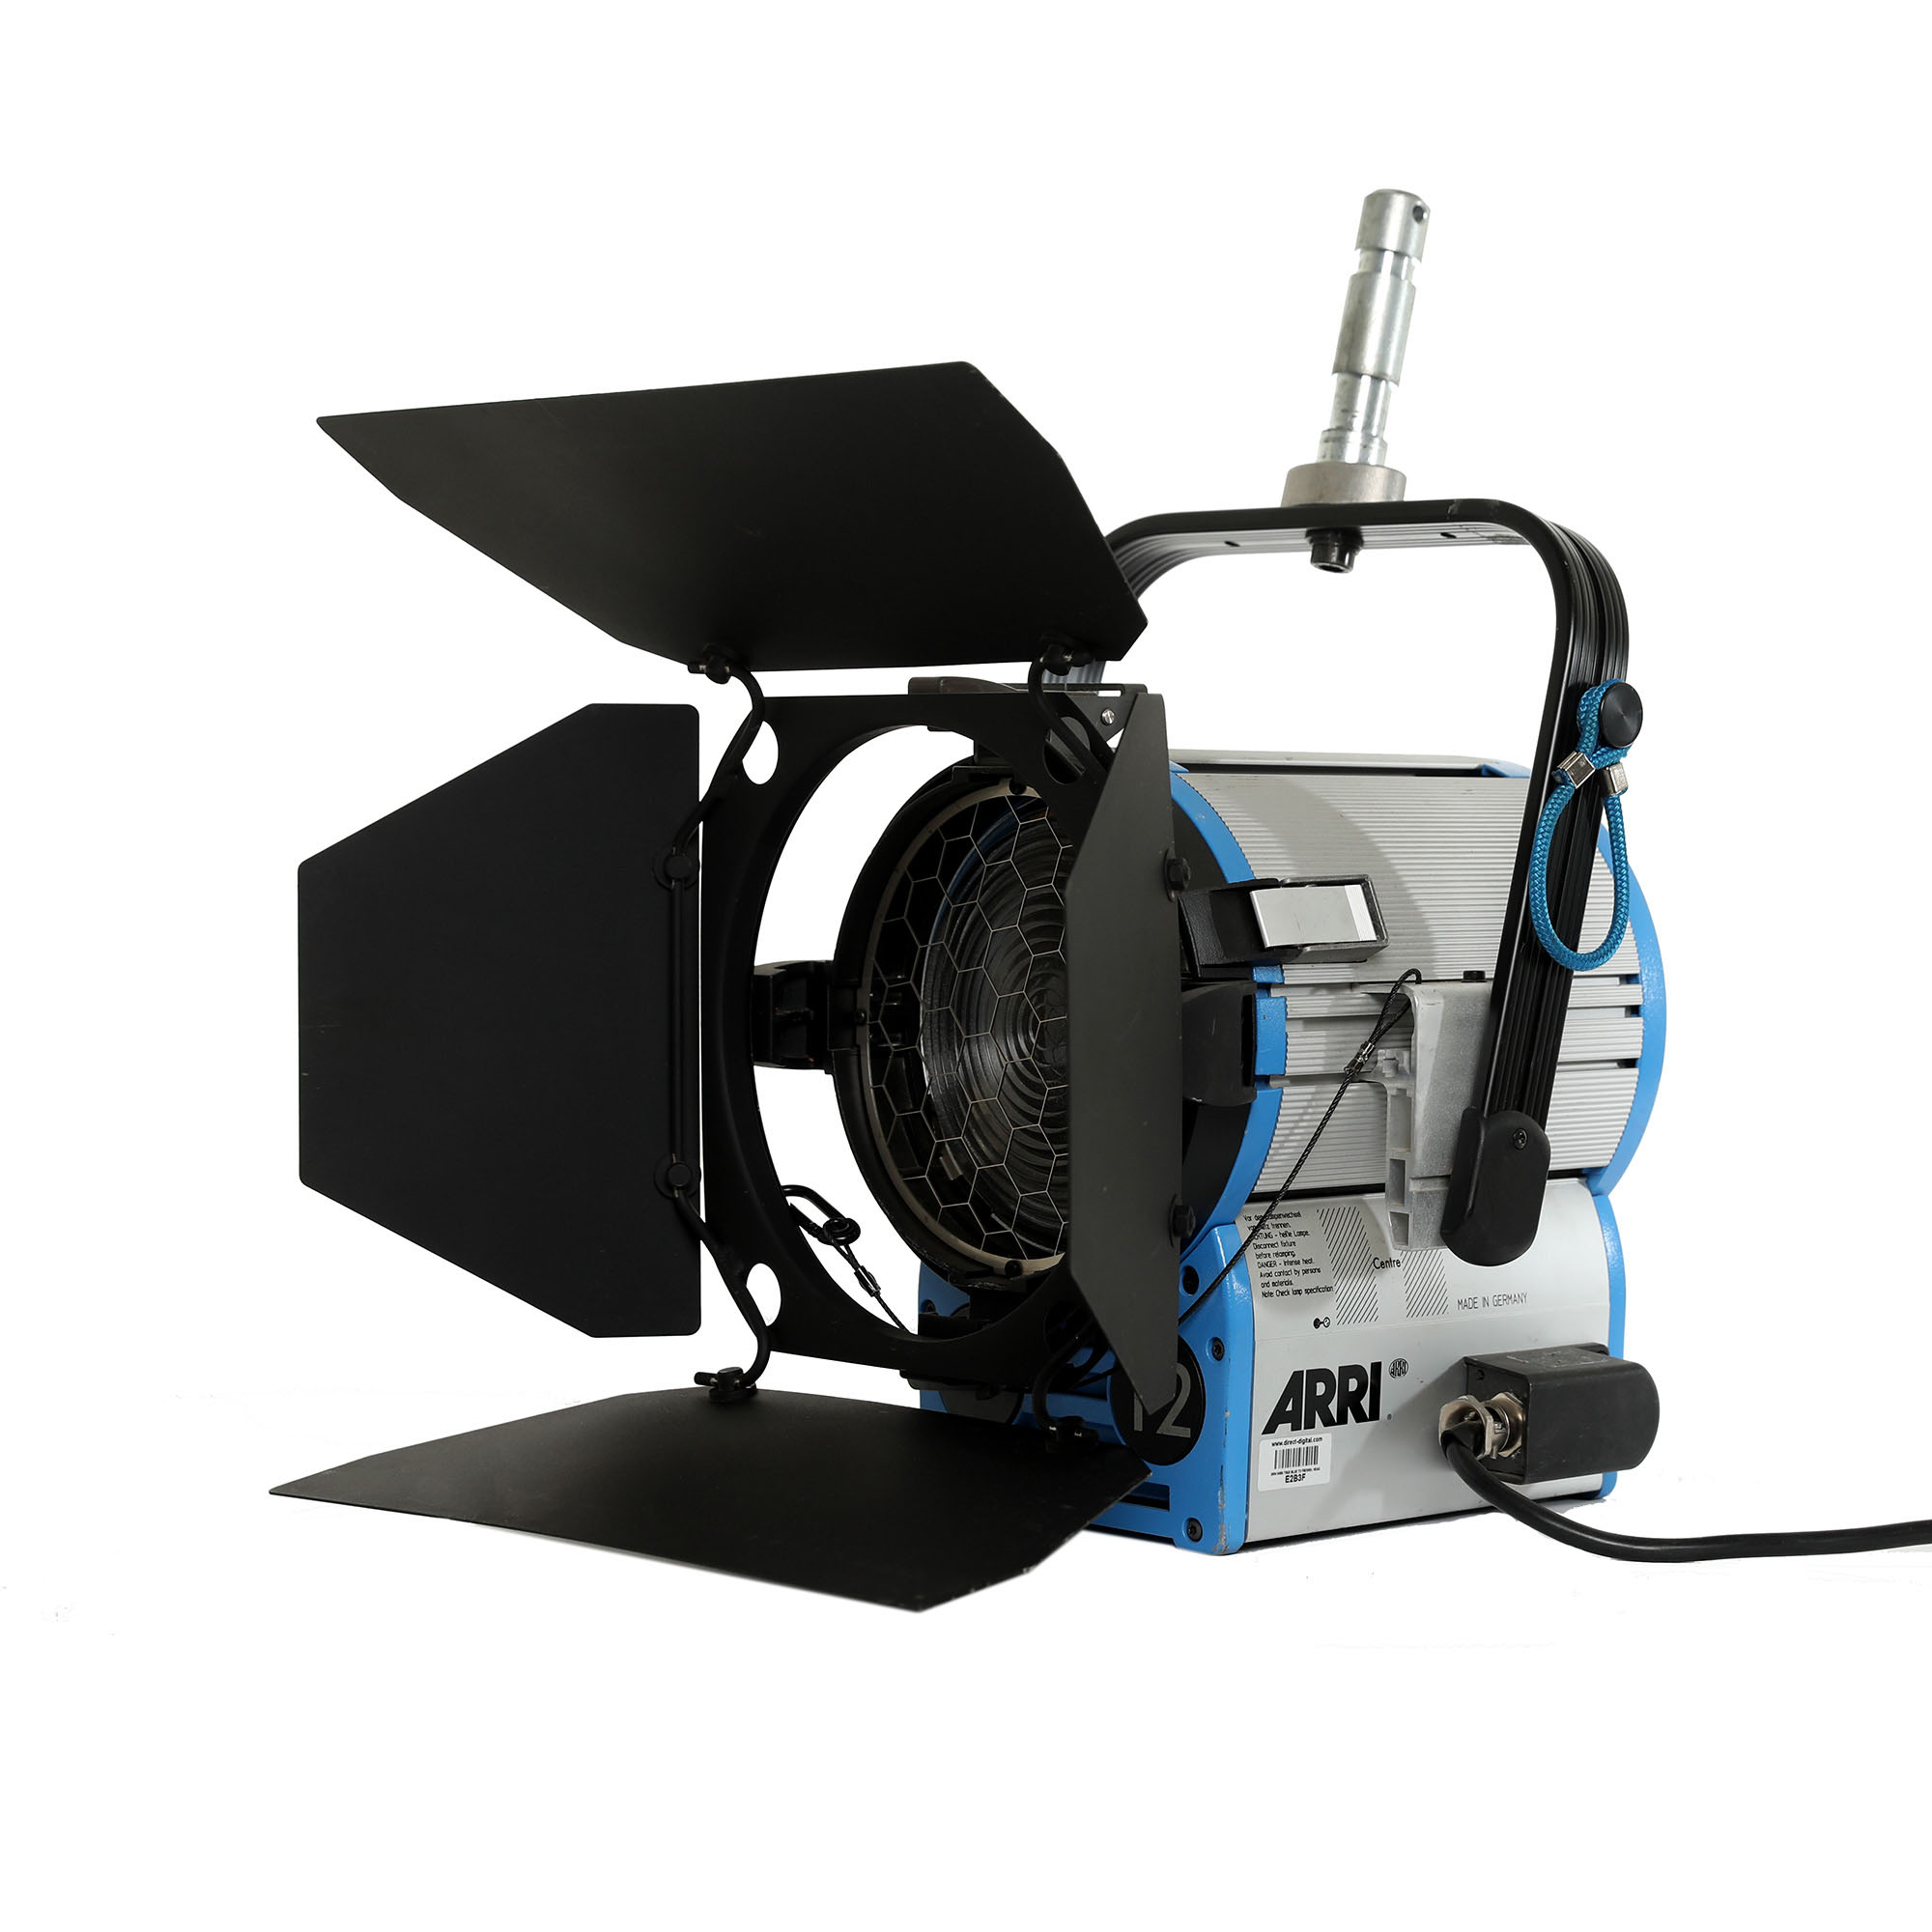 ARRI True Blue T2 2Kw Fresnel